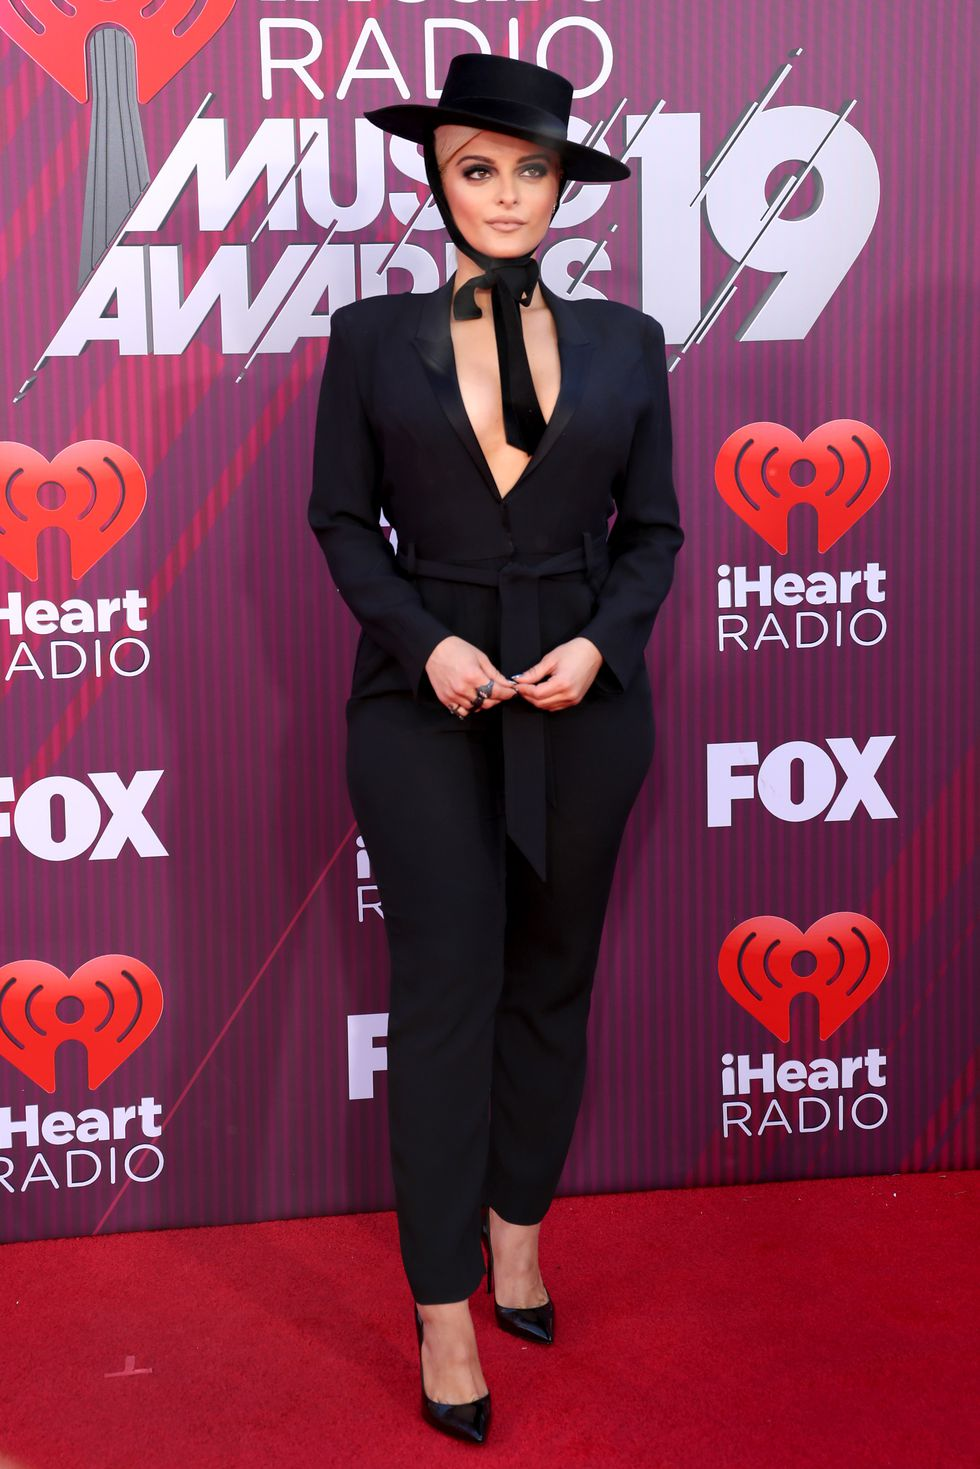 bebe rexha attends the 2019 iheartradio music awards which news photo 1135849685 1552606416 - See all the red carpet looks from the 2019 iHeartRadio Awards